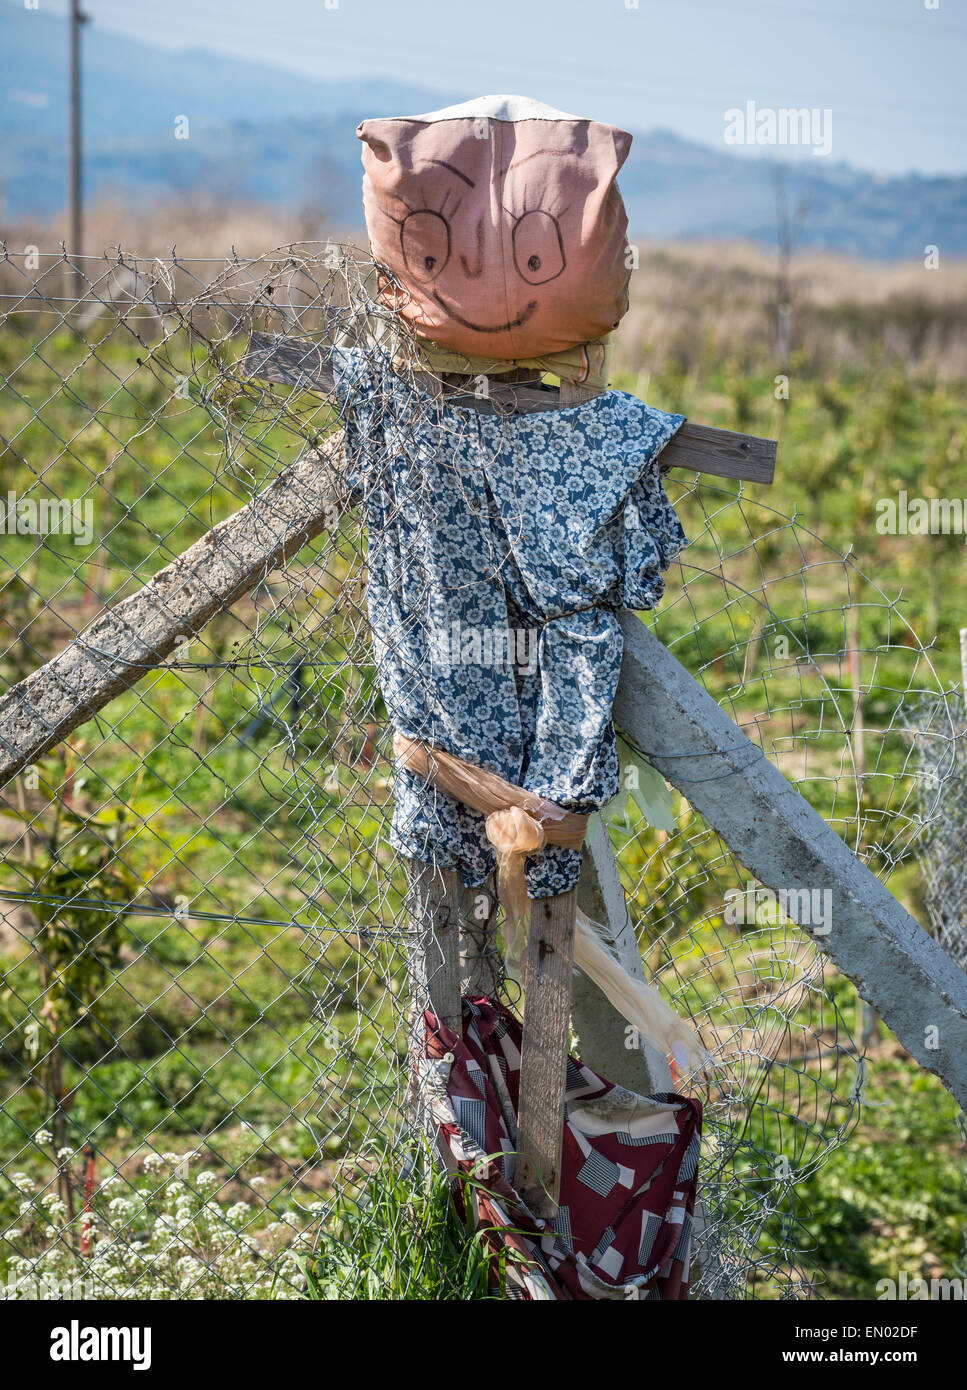 A dordolec, a rag doll or effigy hung at the corner of a field to ward off the evil eye,  a common sight in Southern - Stock Image